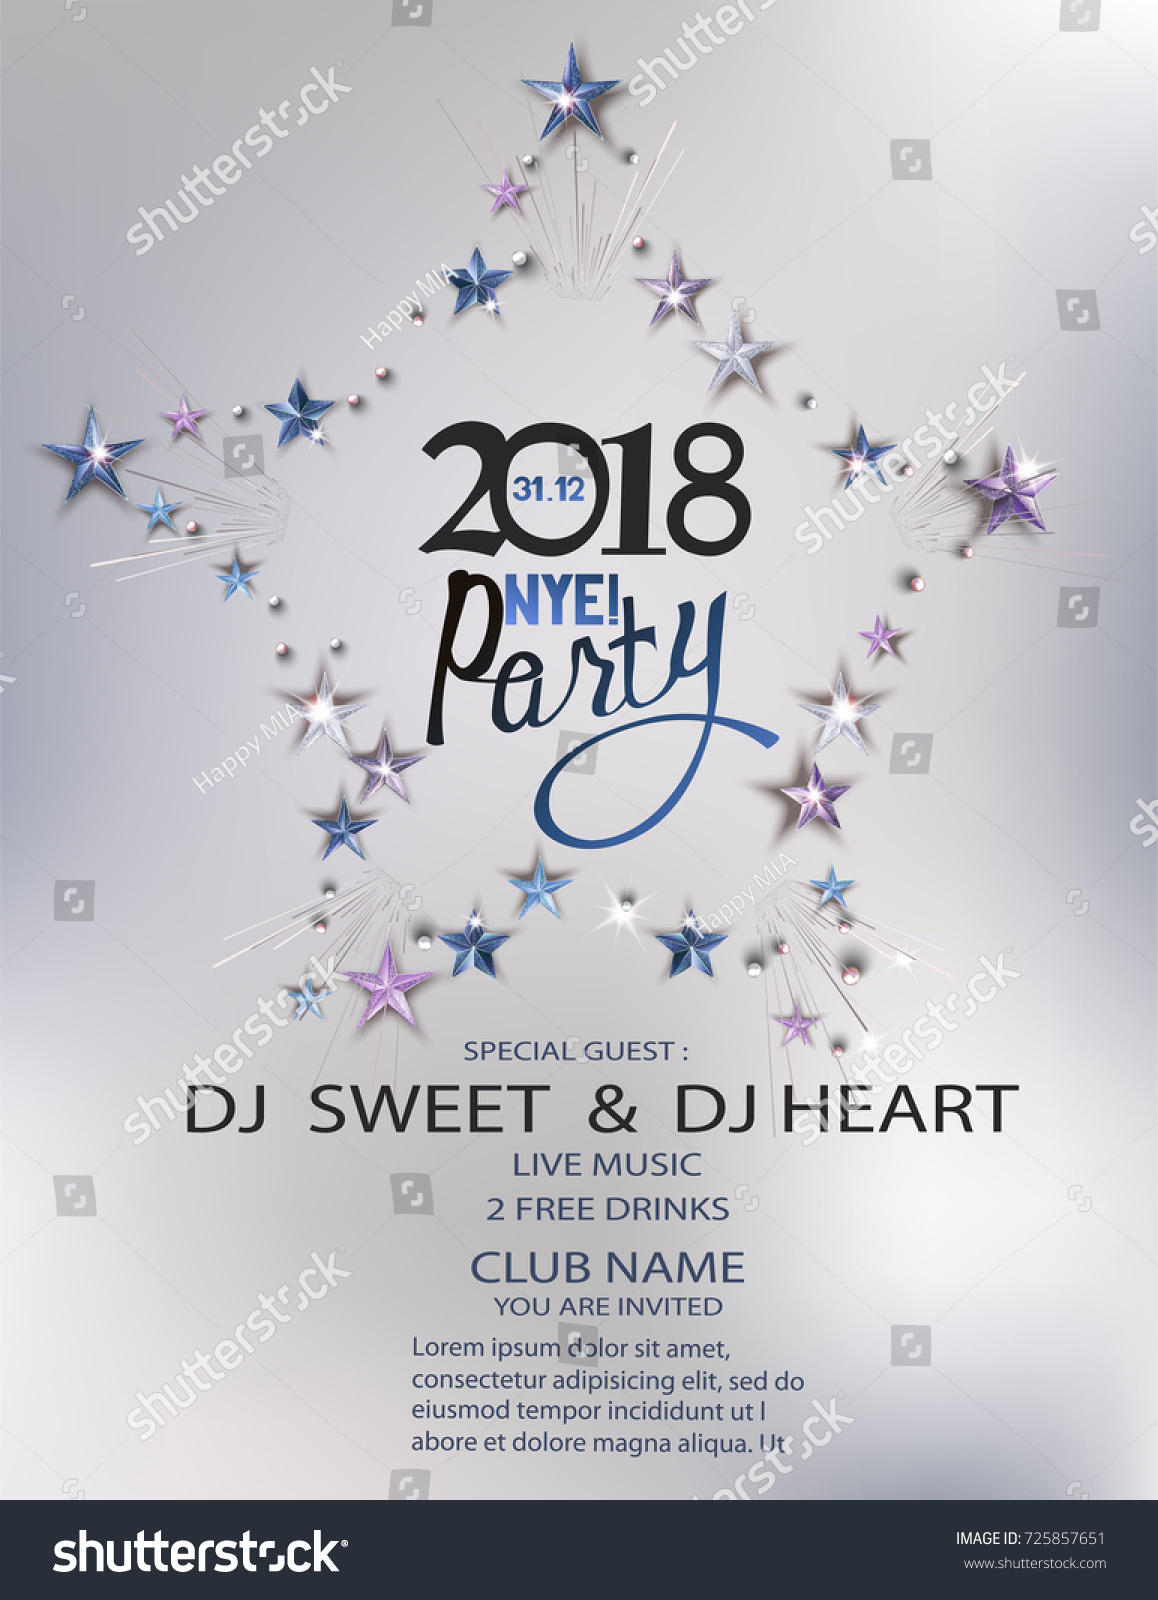 New Year Eve Party Invitation Card Stock Vector (Royalty Free ...